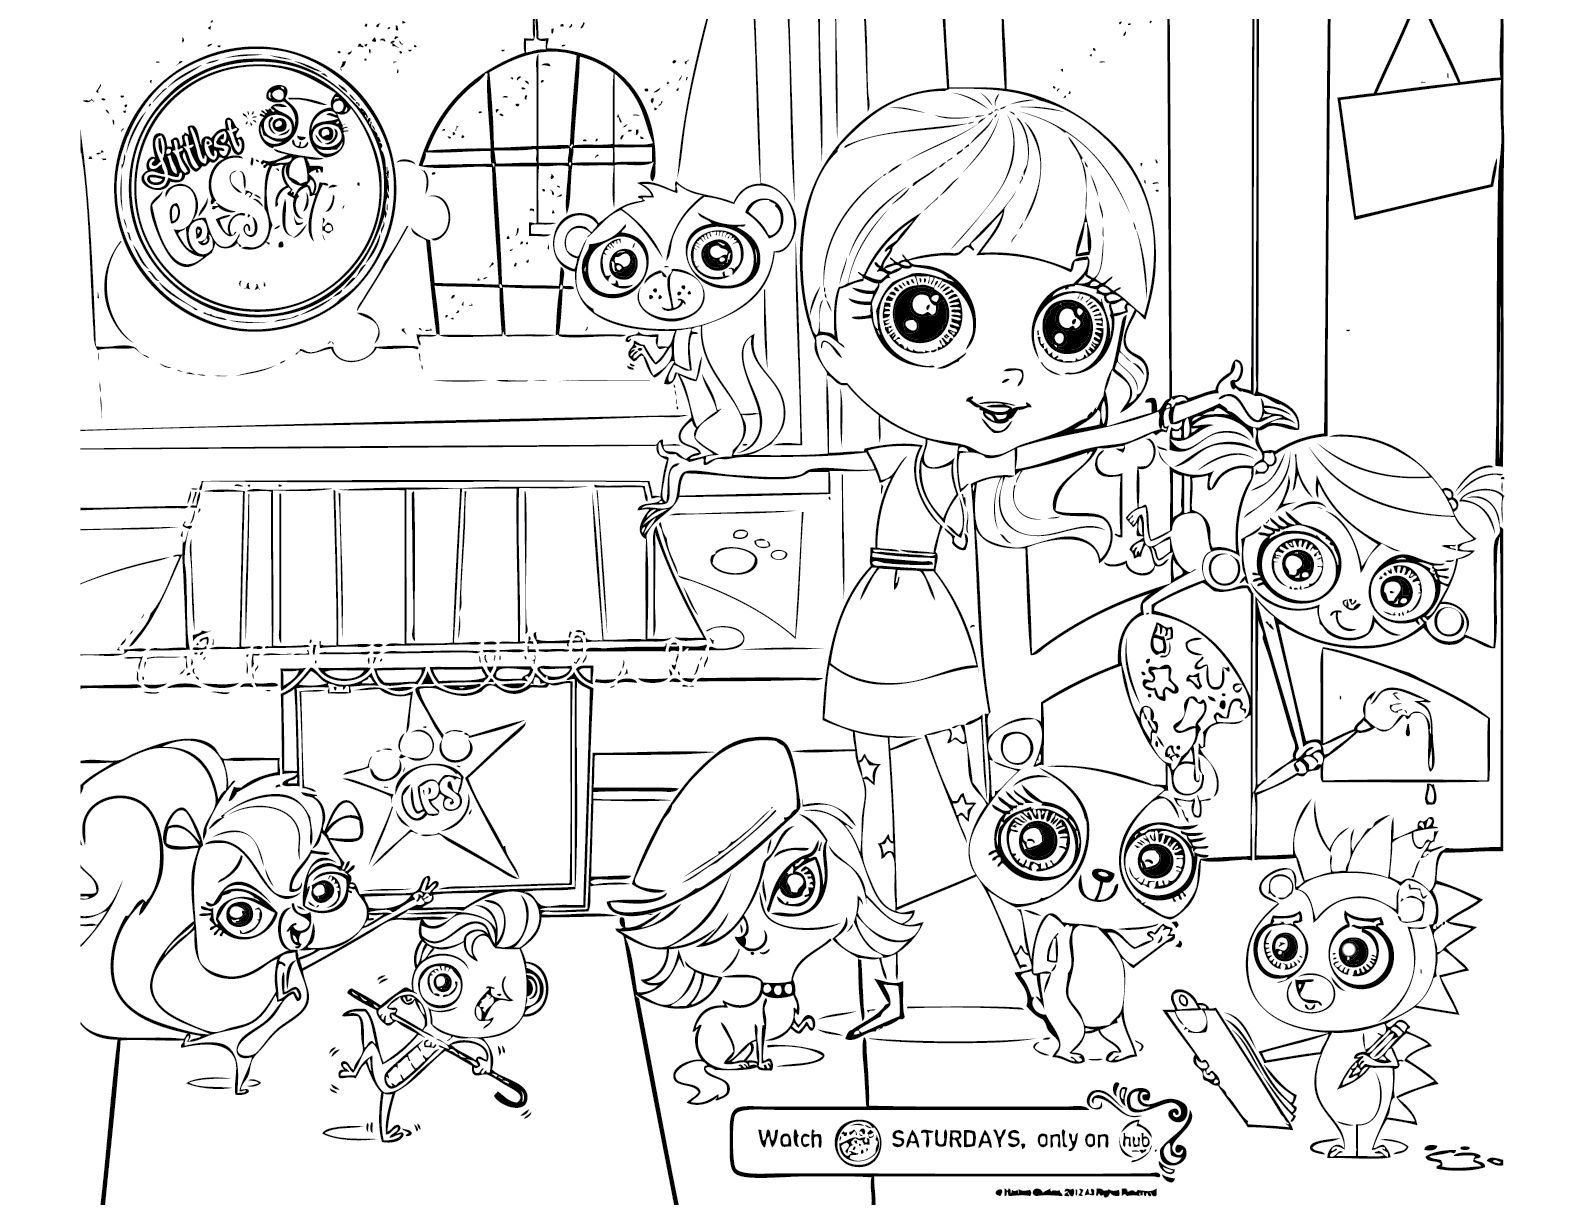 My Littlest Pet Shop Coloring Pages Free Printable Coloring Pages Coloring Pages For Kids Coloring Pages Bunny Coloring Pages